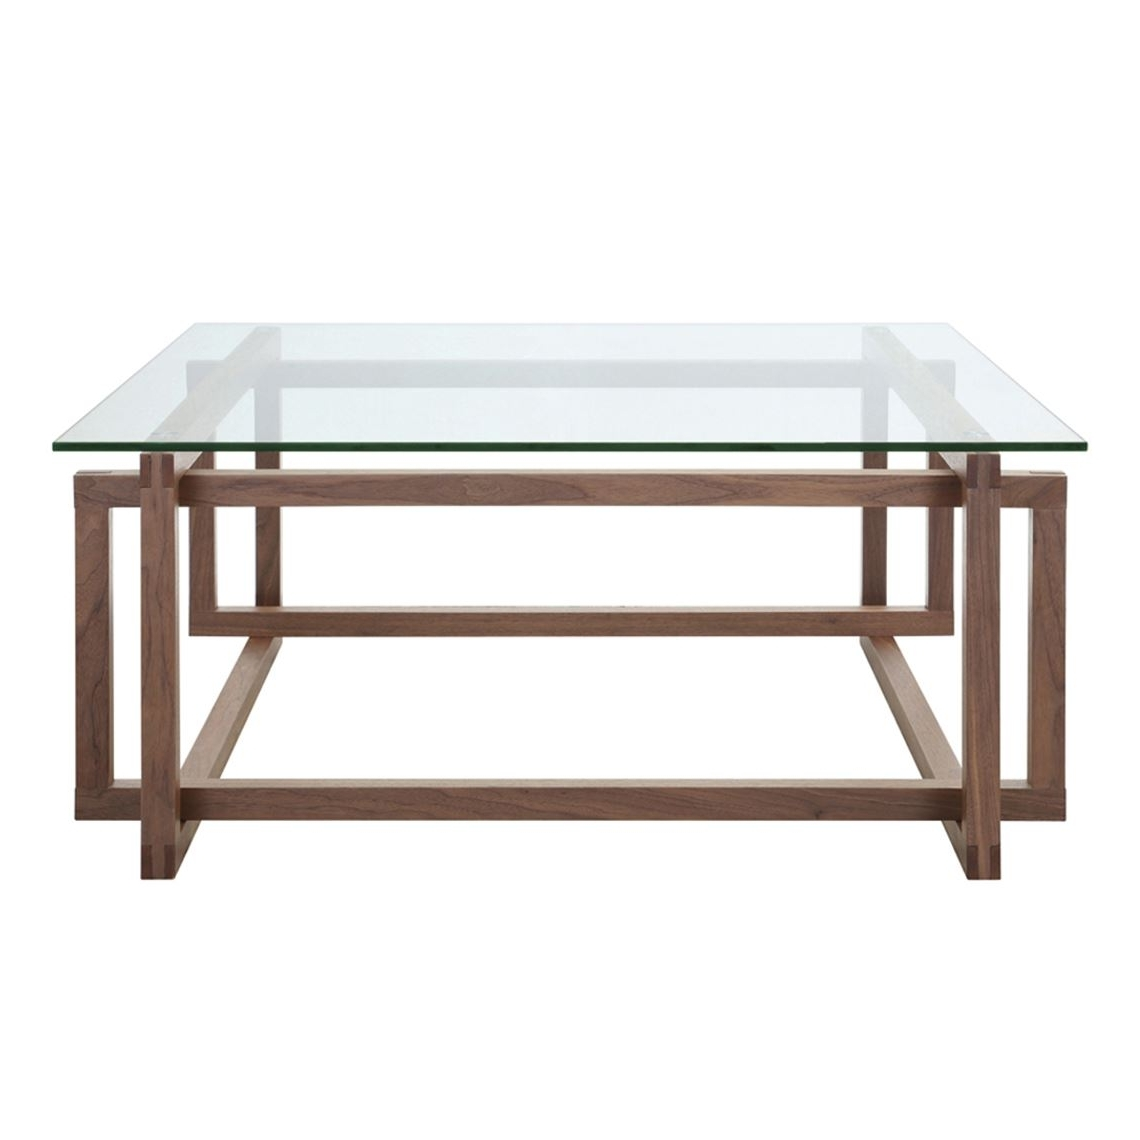 Famous Brisbane Oval Coffee Tables With Regard To All Tables Online – Coffee Tables, Console Tables & Side Table – Freedom (View 8 of 20)